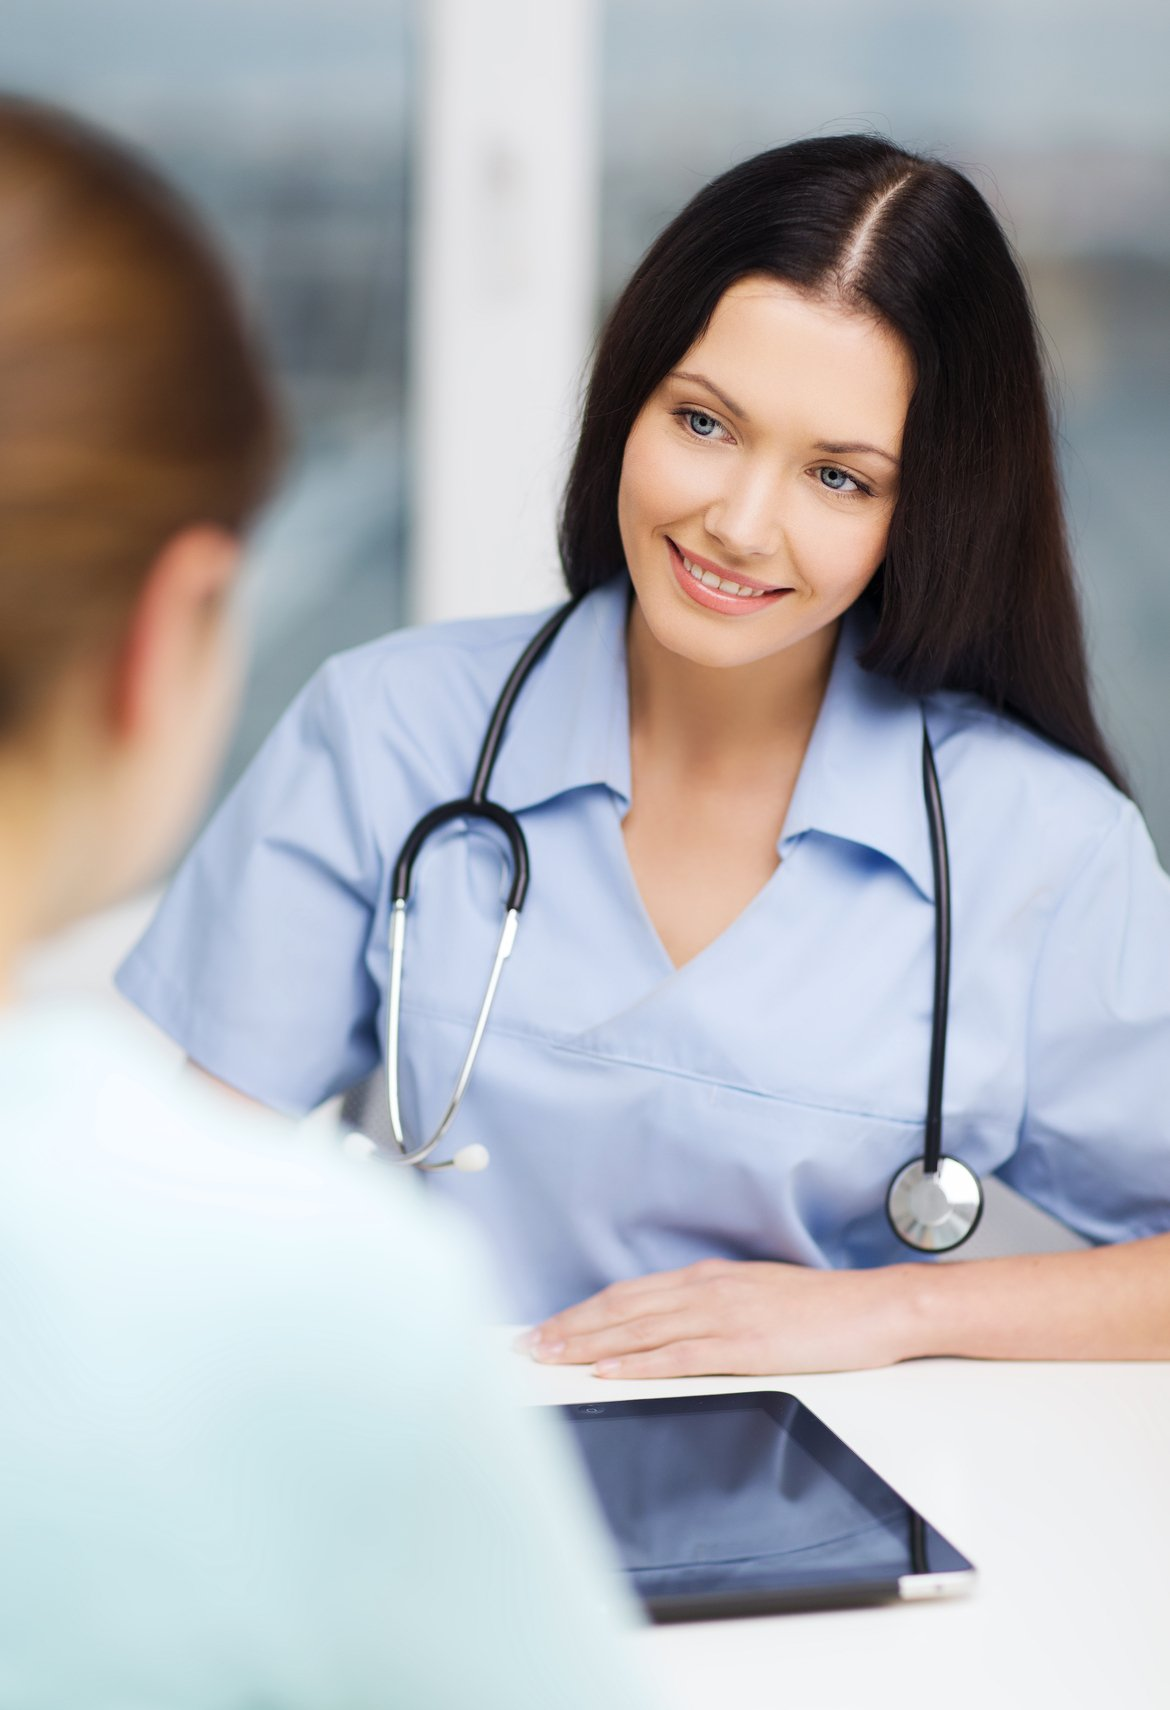 Patient Engagement Best Practices While Using an EHR